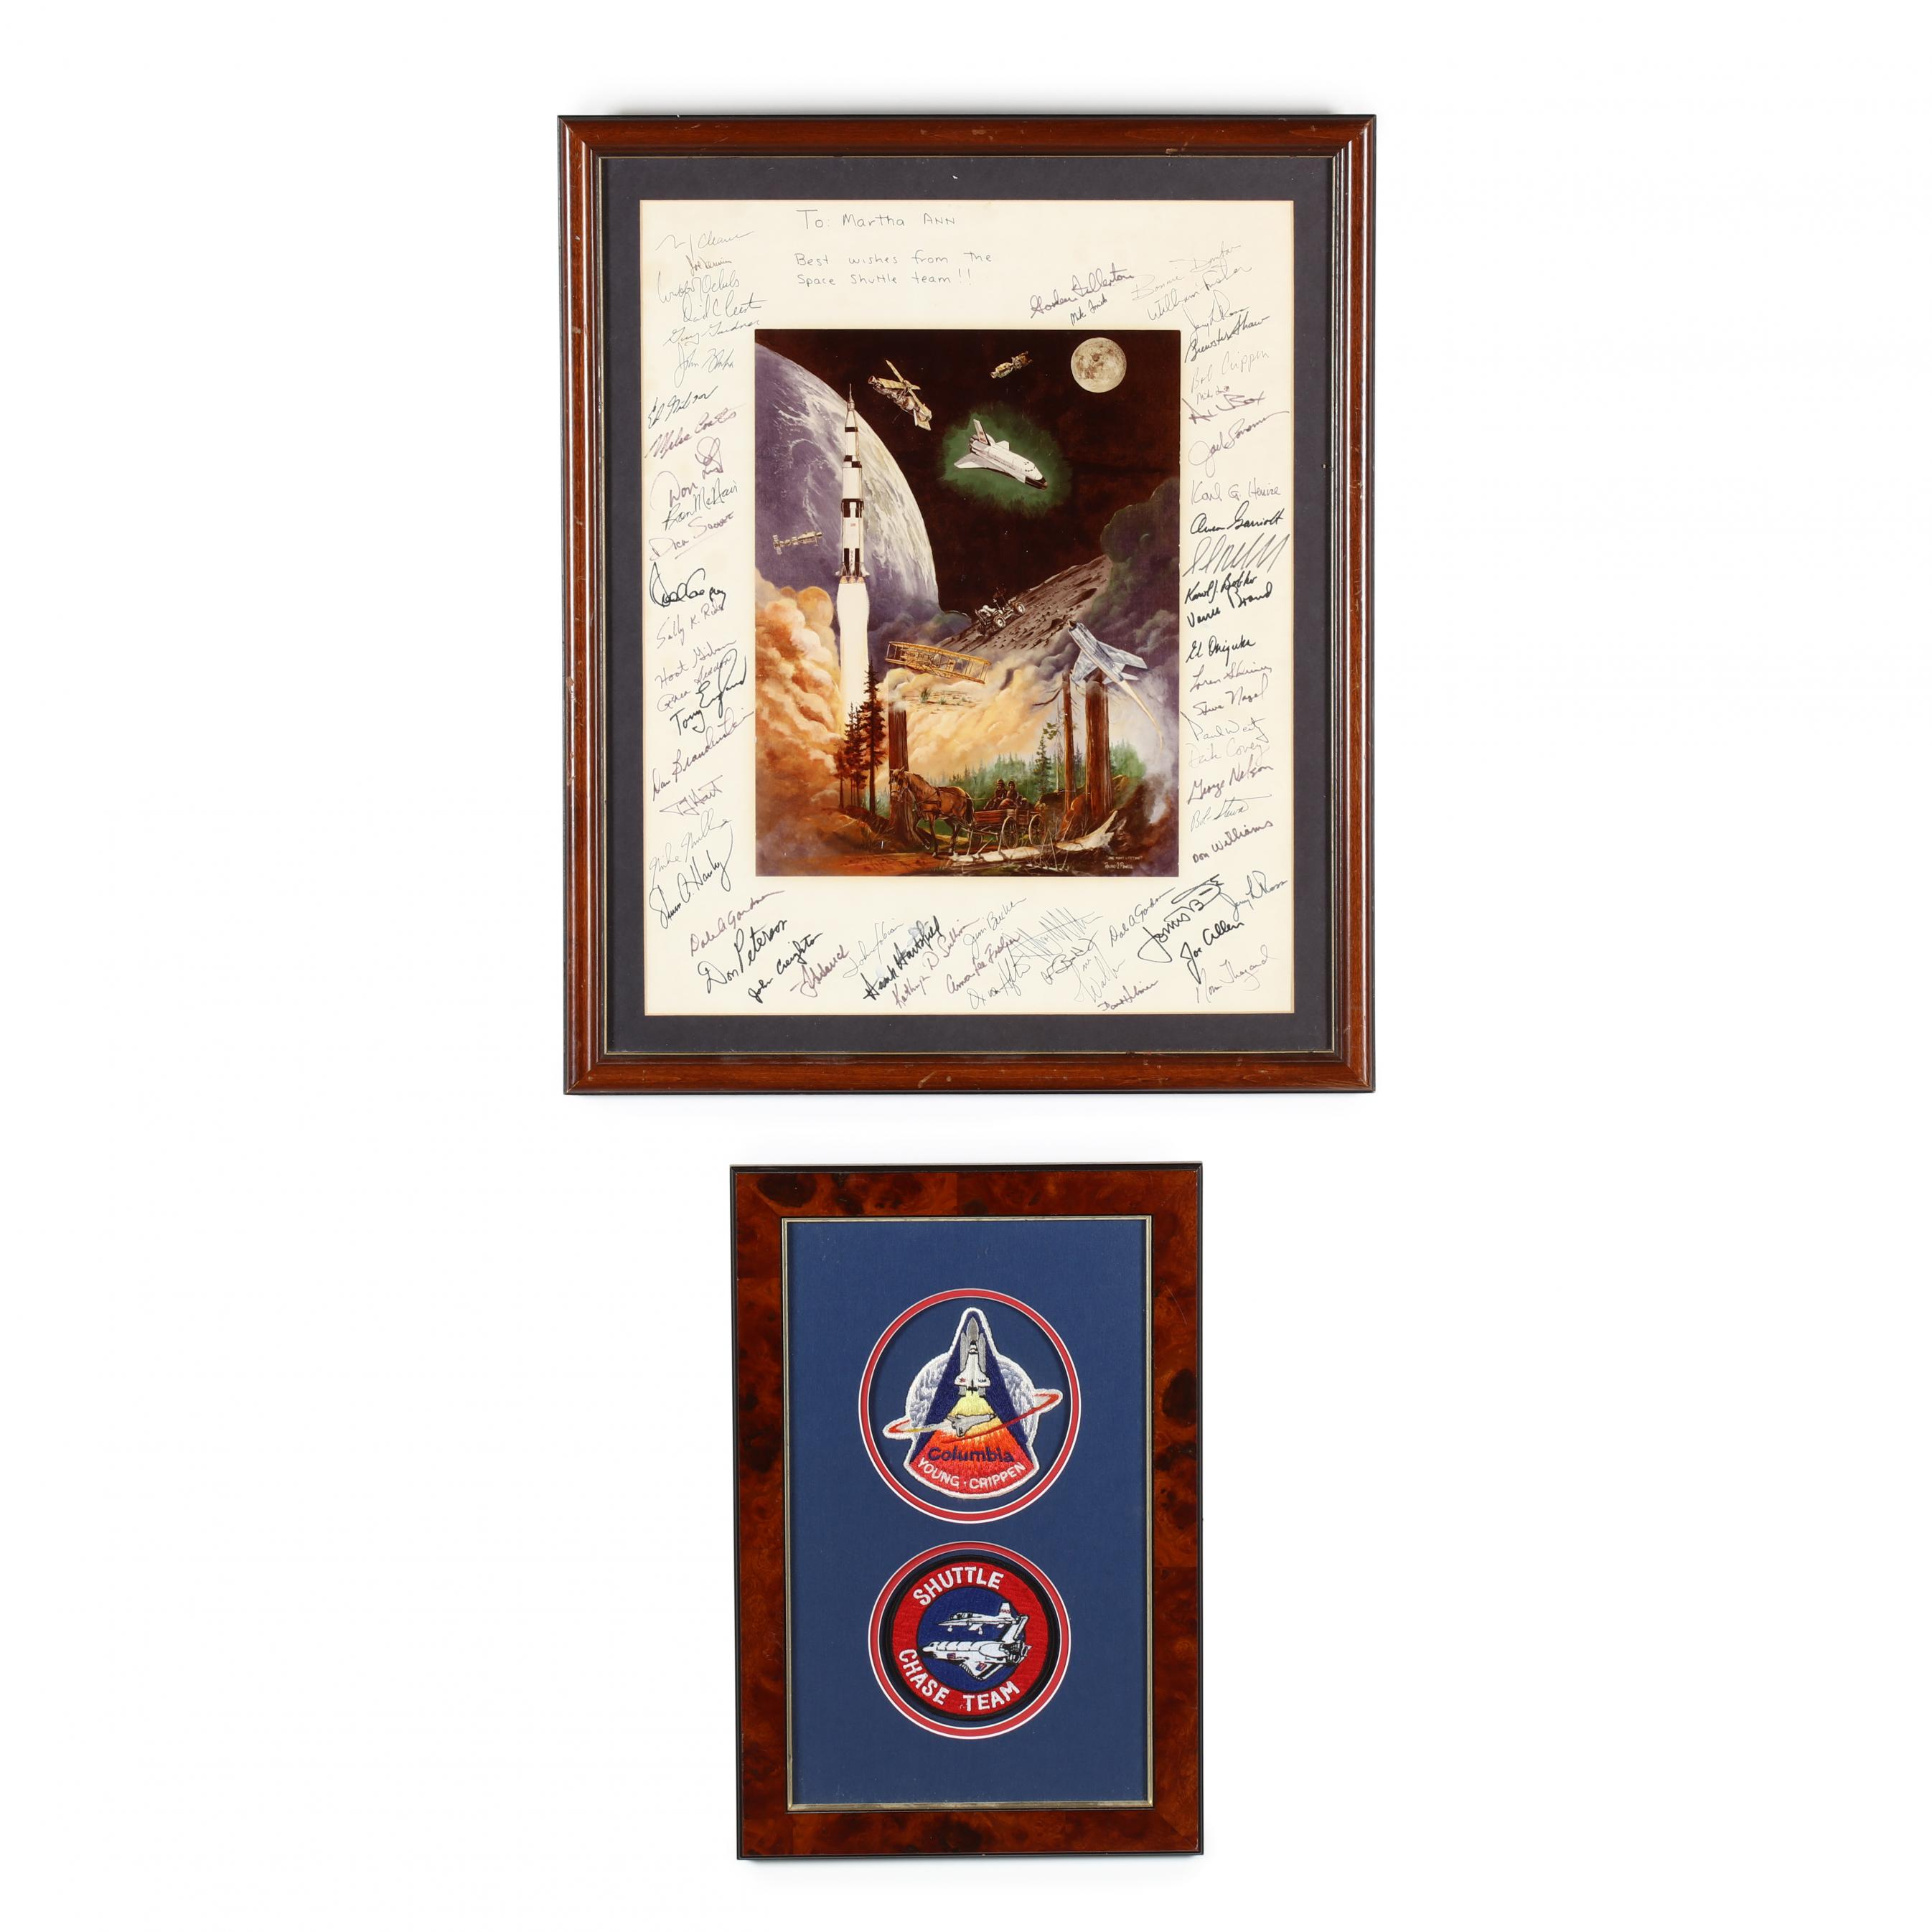 nasa-shuttle-team-autographed-poster-and-two-patches